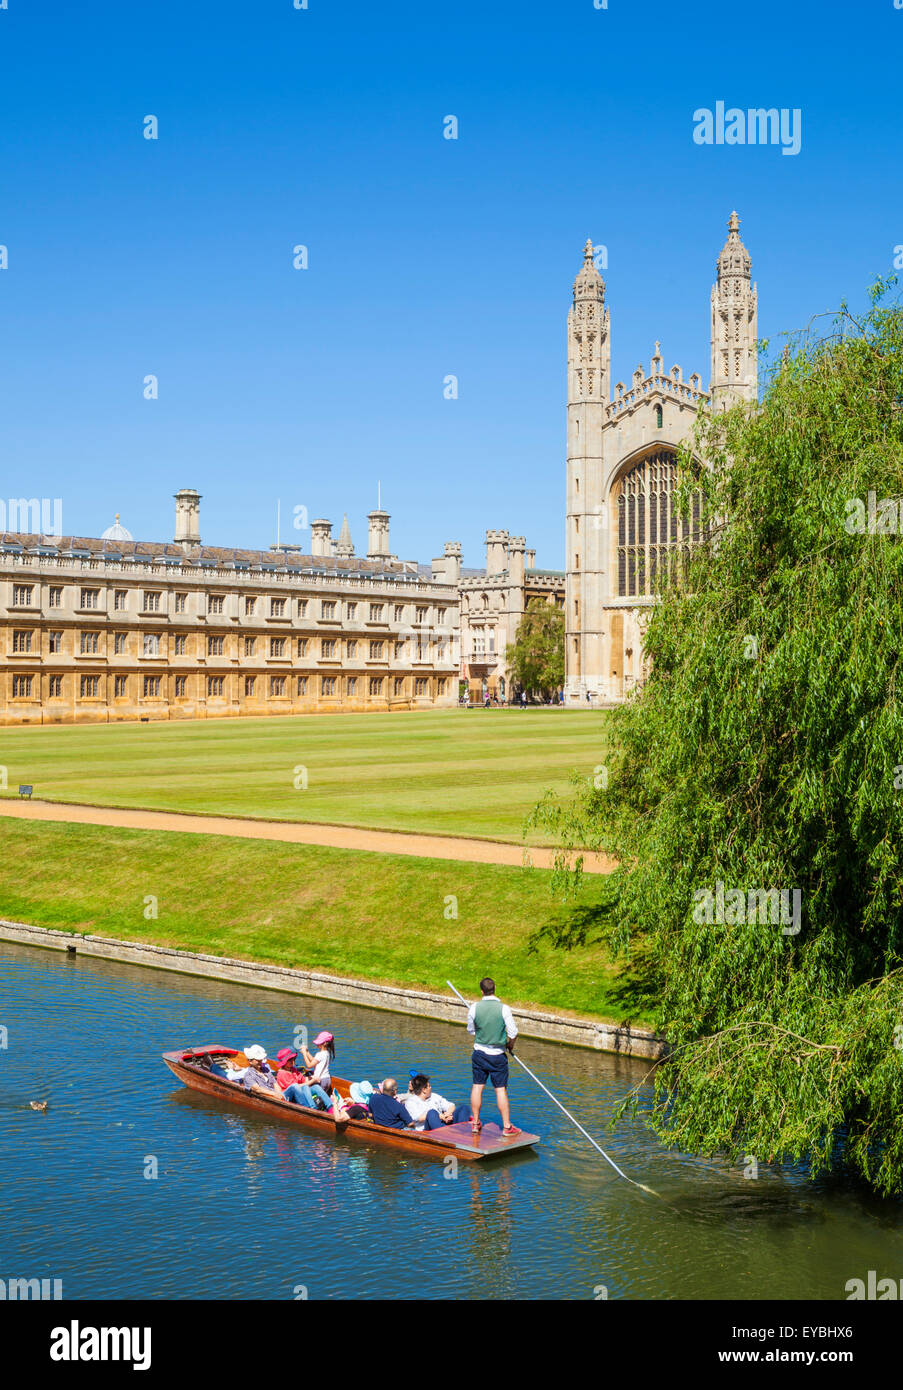 Tourist Punting tour on the River Cam with Kings college and Clare college Cambridge Cambridgeshire England UK GB - Stock Image